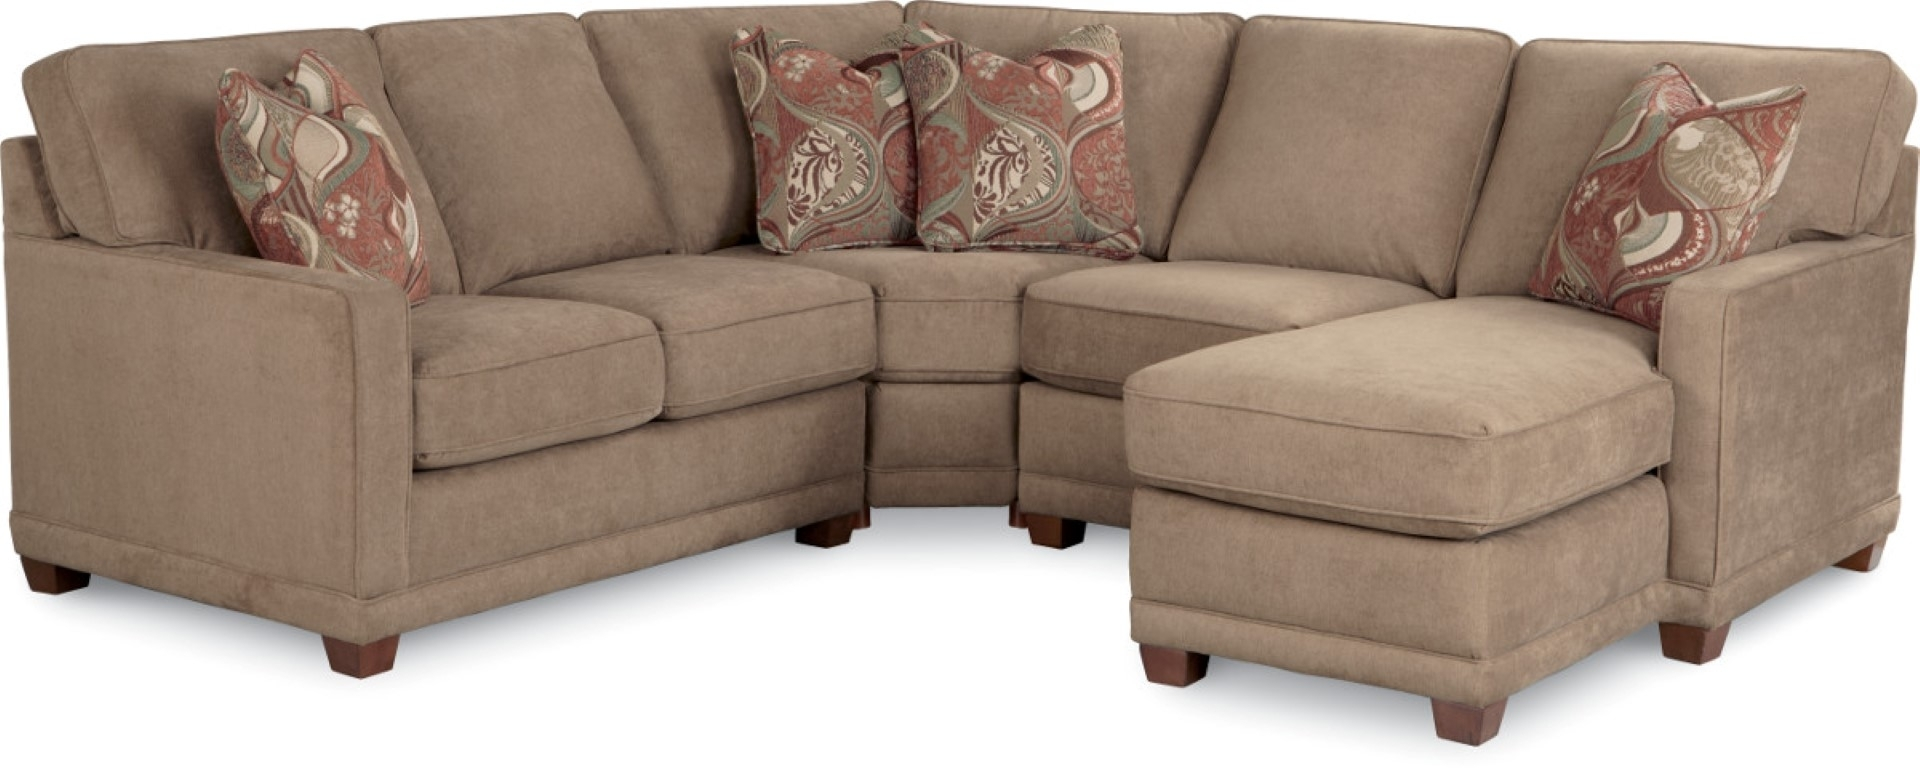 Kennedy Sectional Sofa – Town & Country Furniture In La Z Boy Sectional Sofas (Gallery 2 of 10)